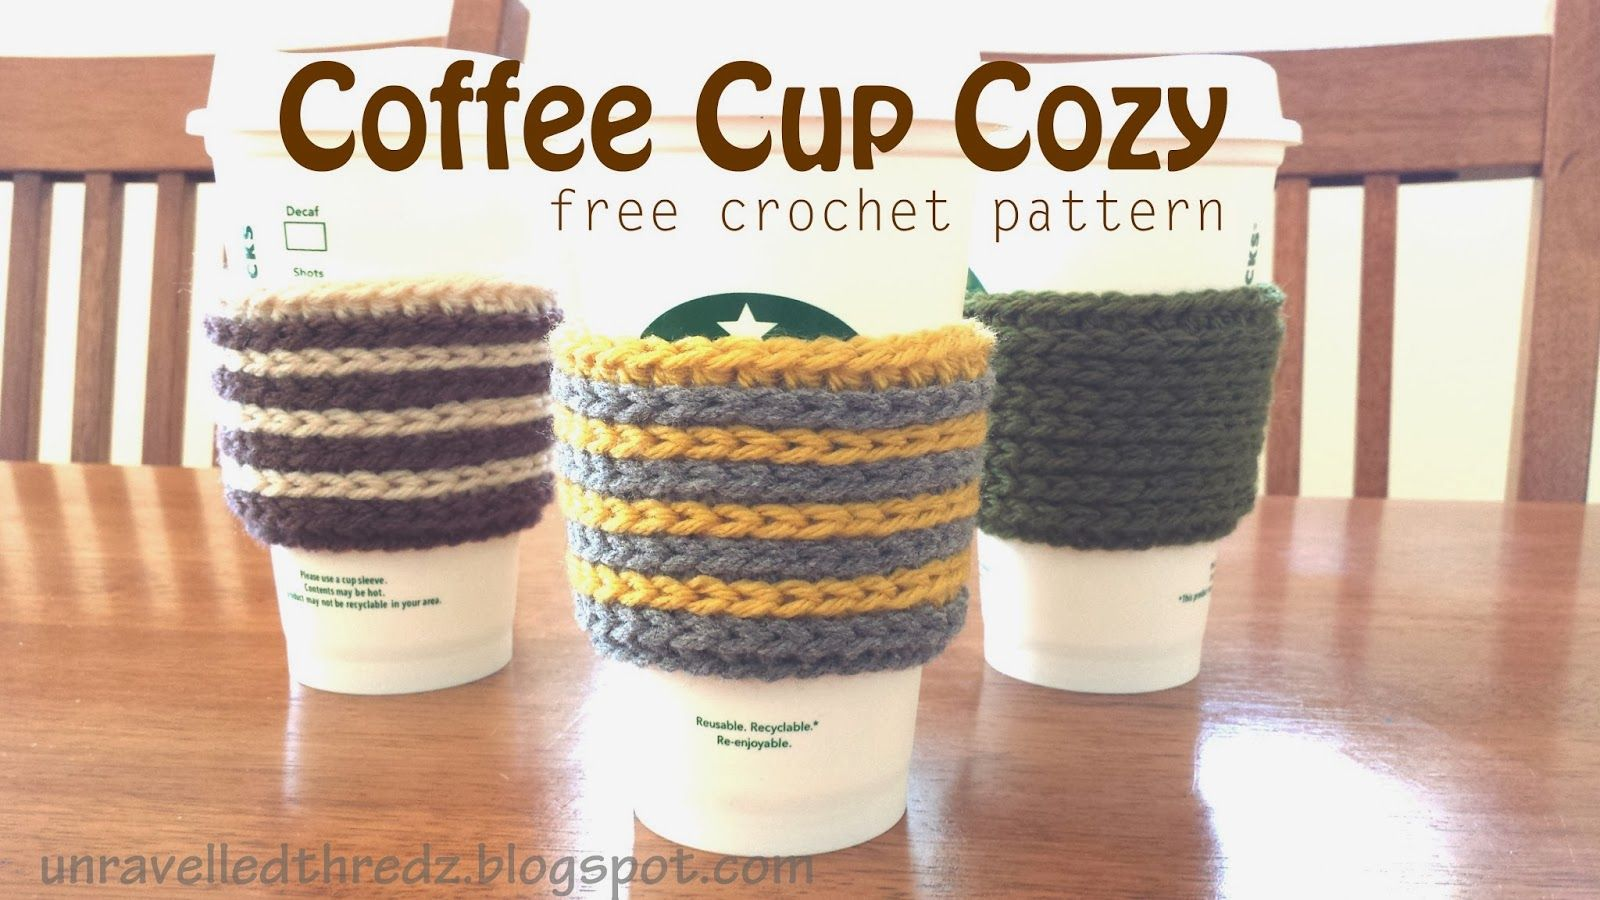 Fantastic Crochet Cozy Cup Pattern Image - Easy Scarf Knitting ...